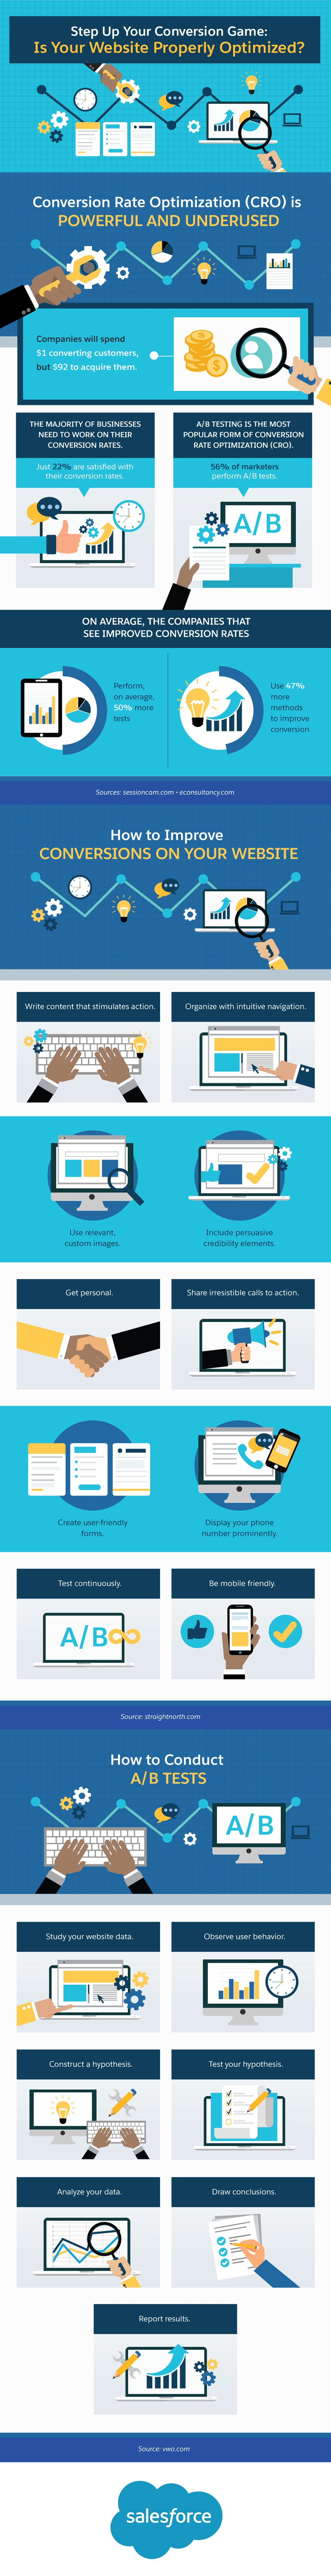 Is Your Website Properly Optimized? Must Have Conversion Rate Optimization Tips (Infographic) 1